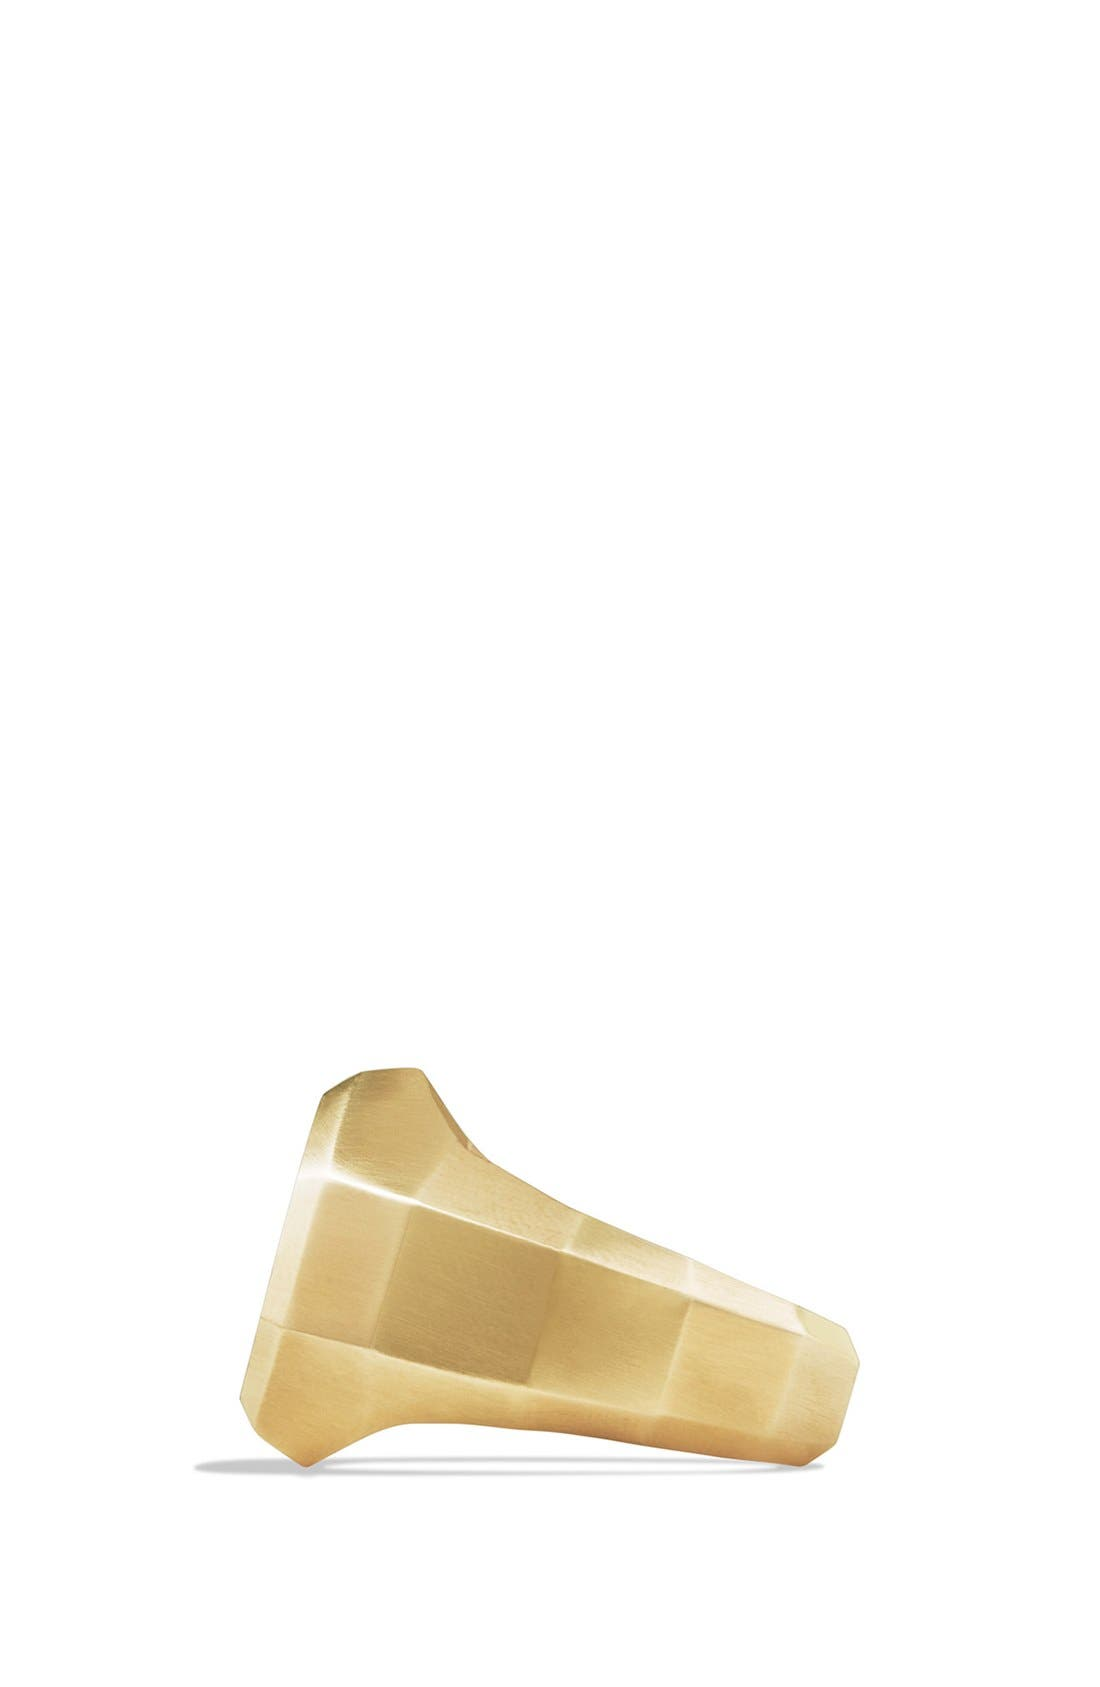 Alternate Image 3  - David Yurman 'Faceted' Signet Ring with 18k Gold